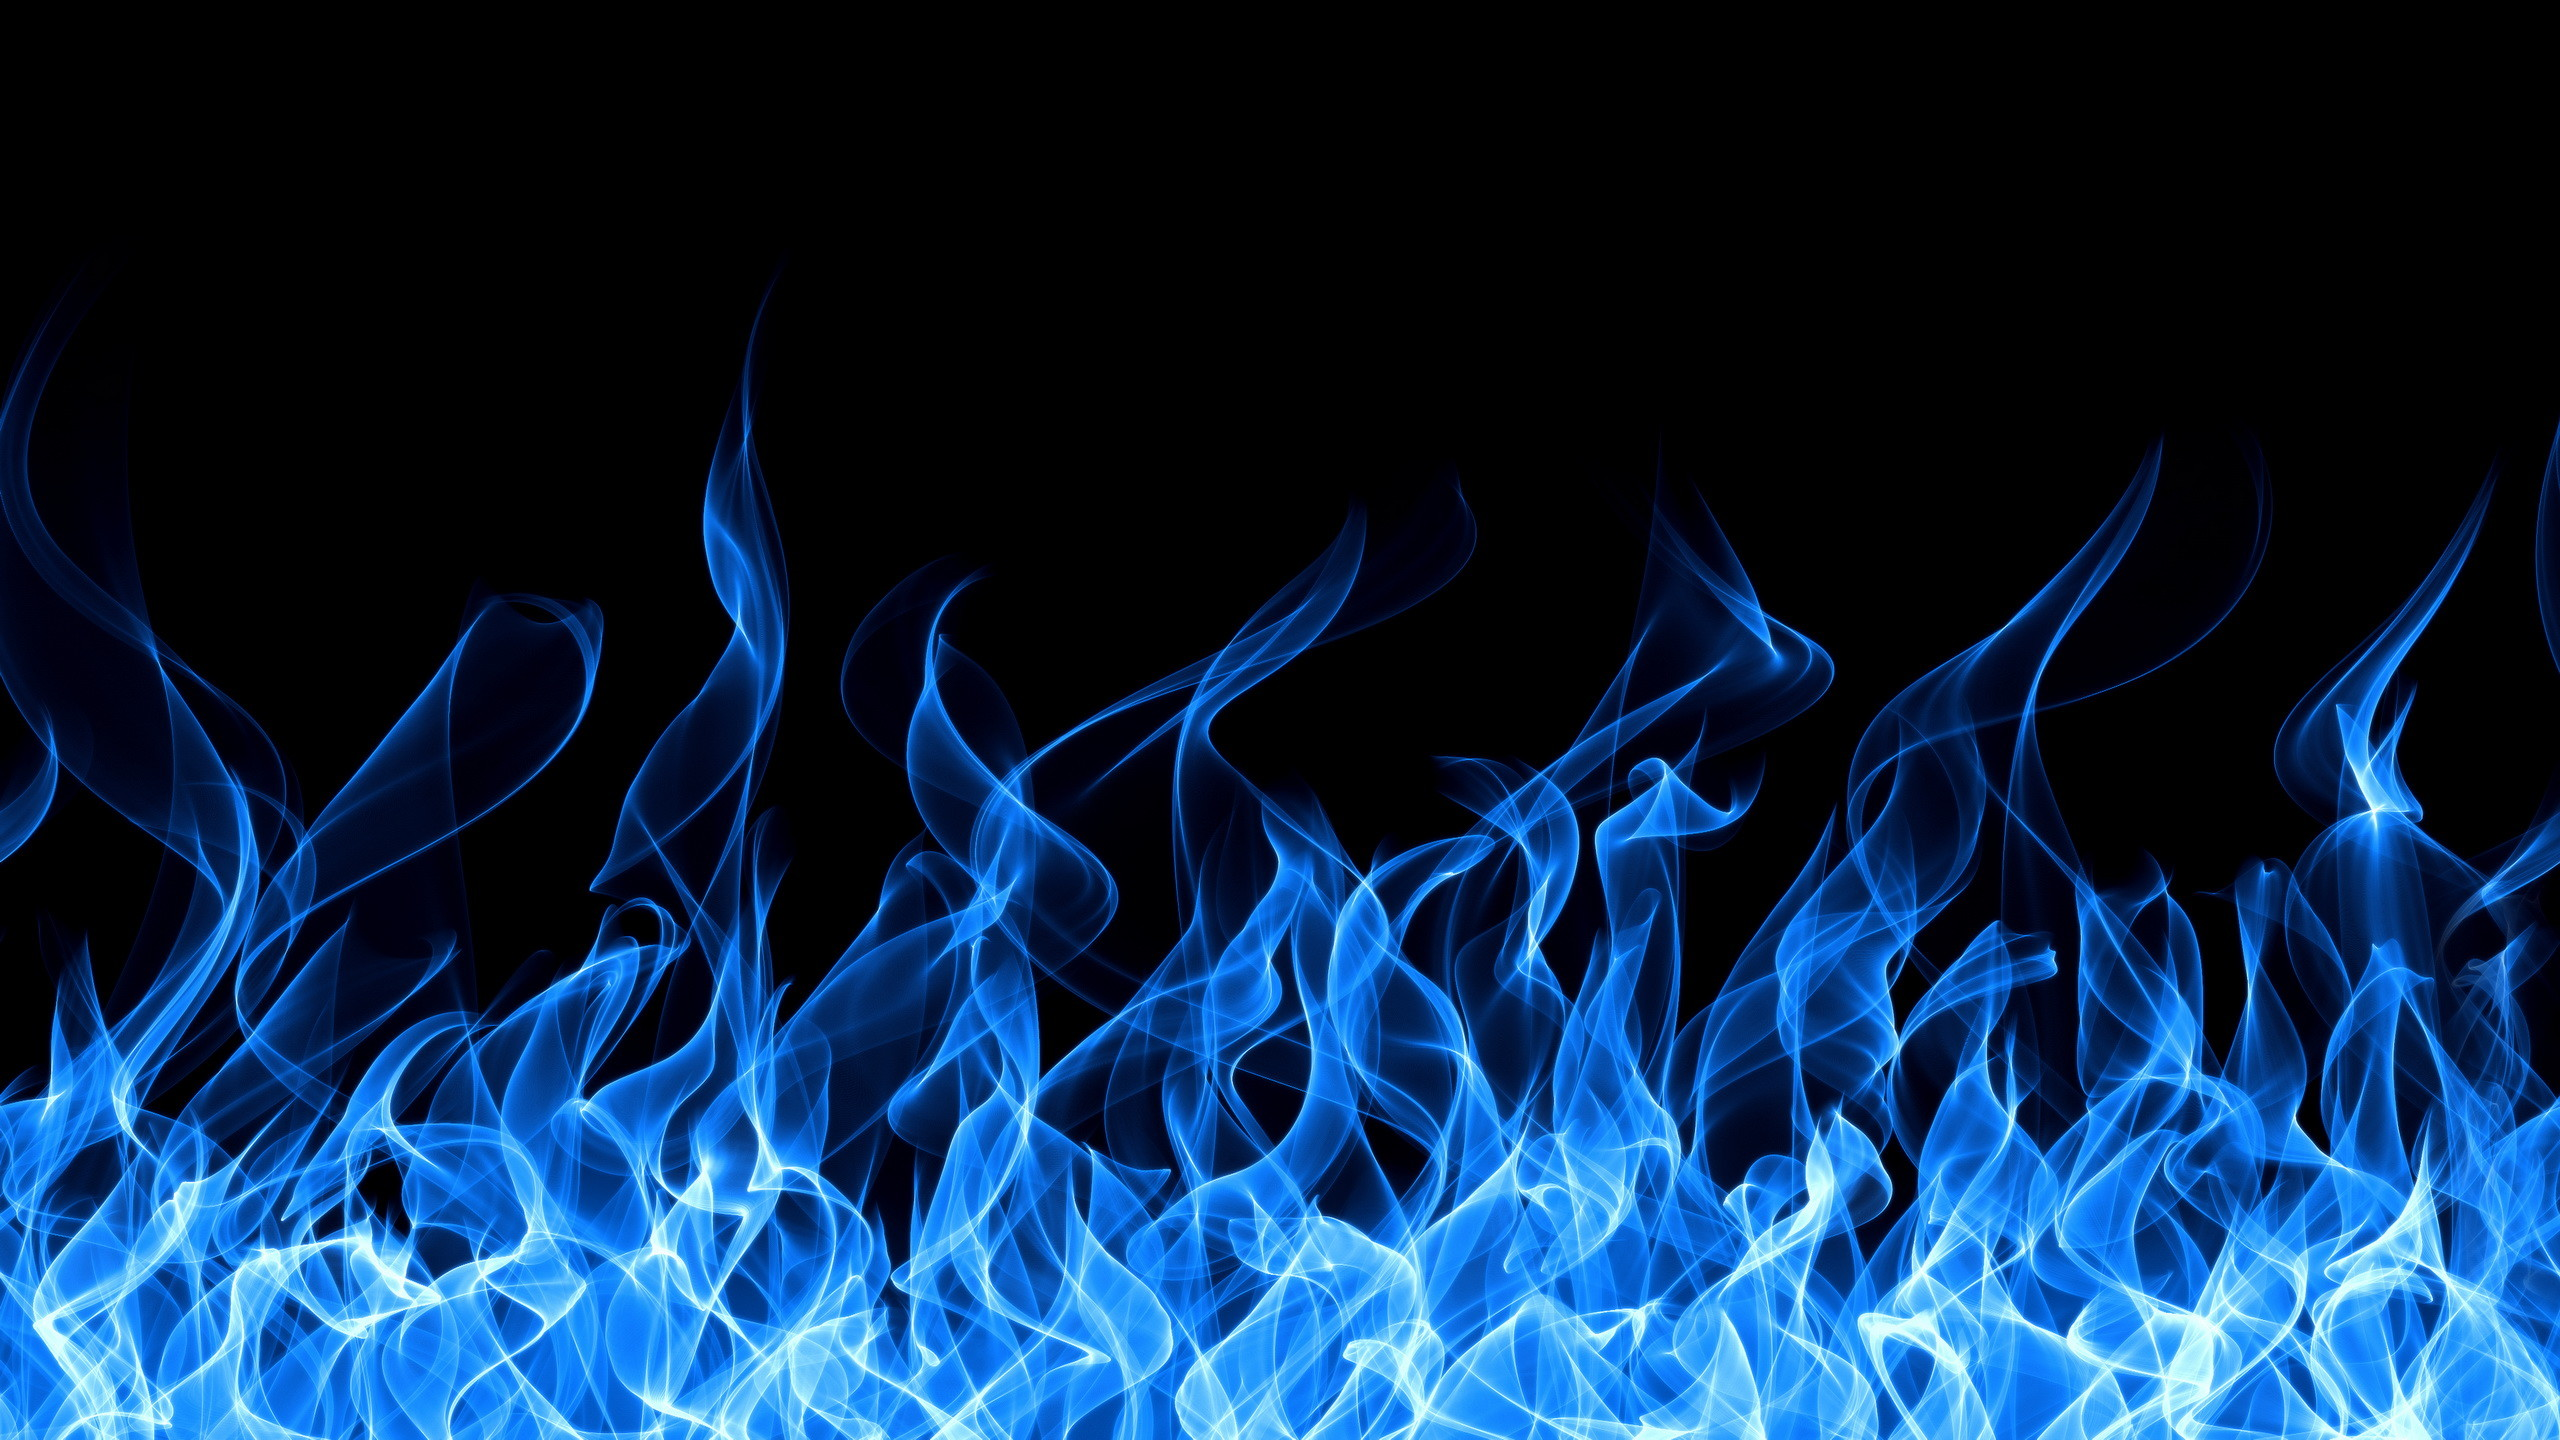 cool flame backgrounds 183��